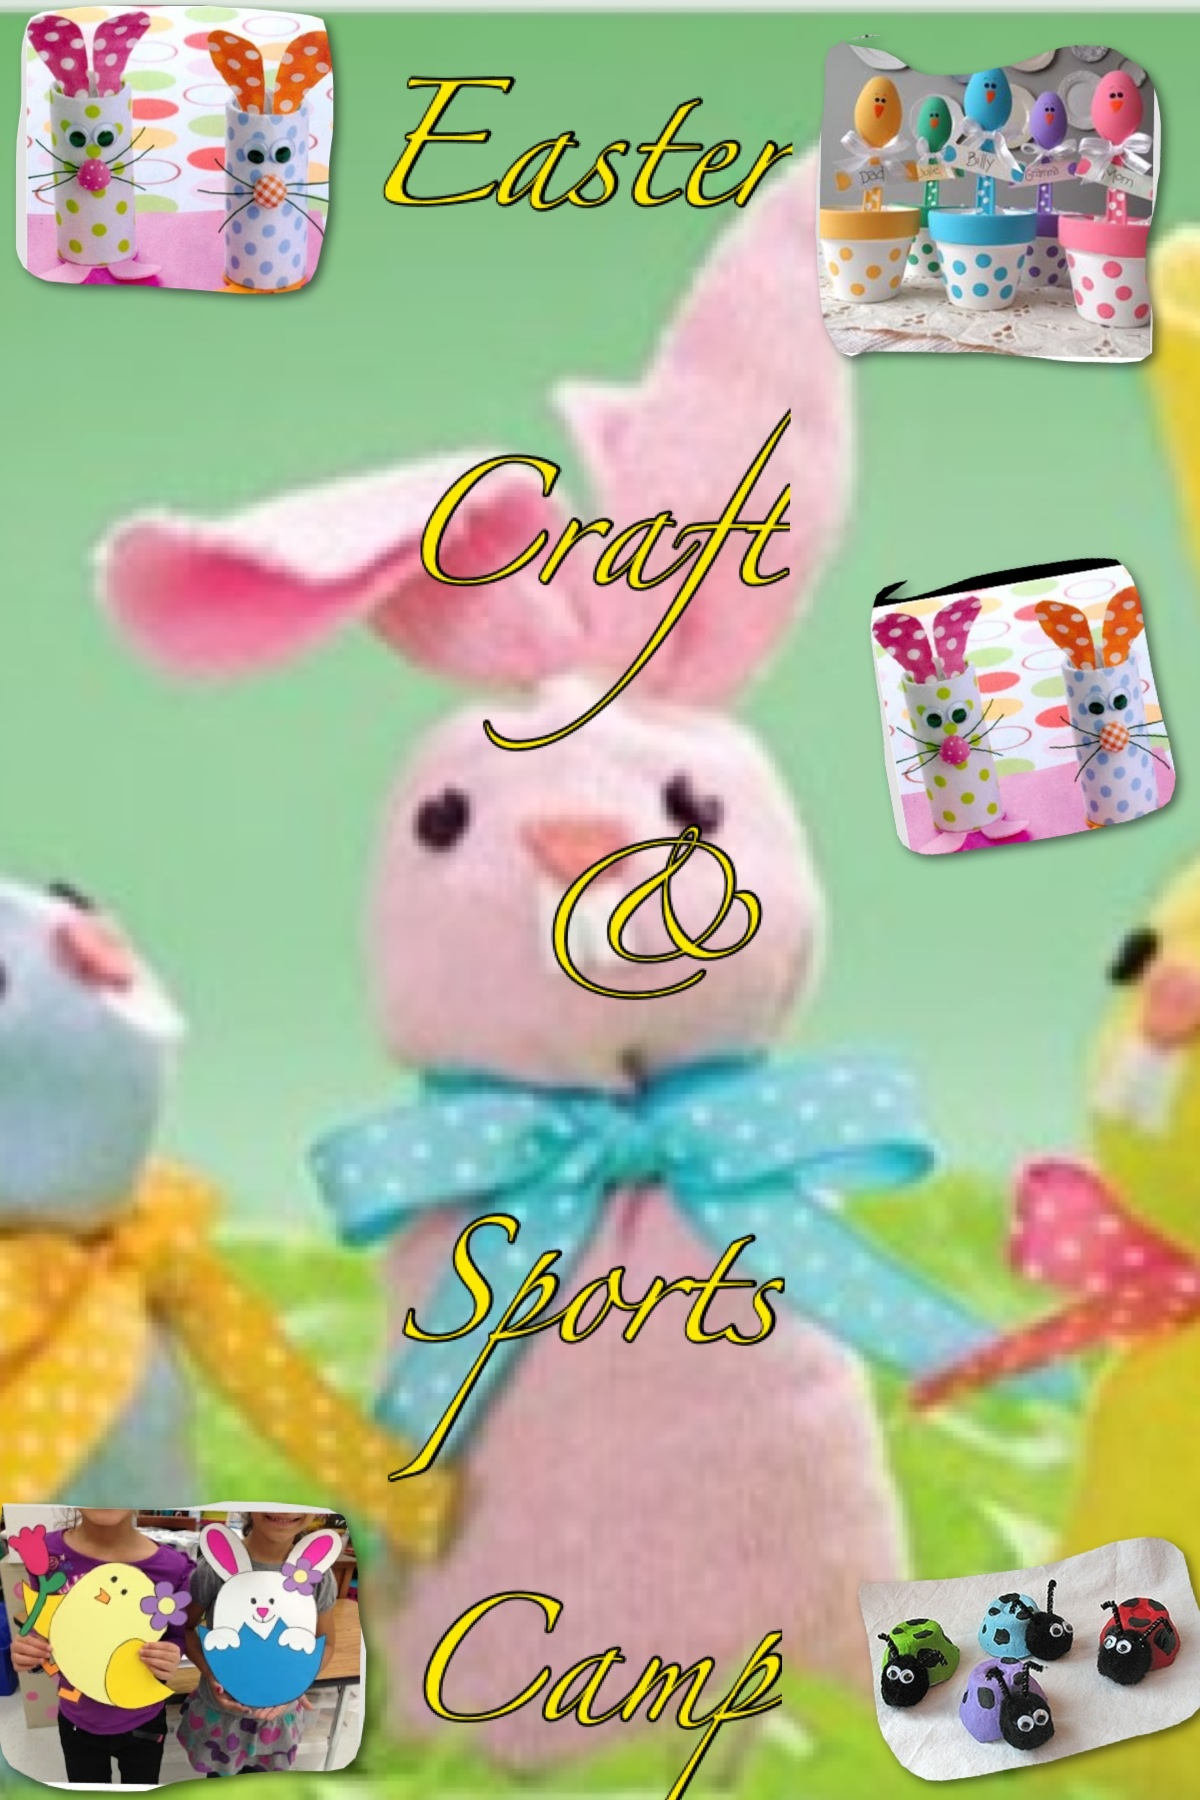 Trim Easter Arts/Crafts & Sports Camp